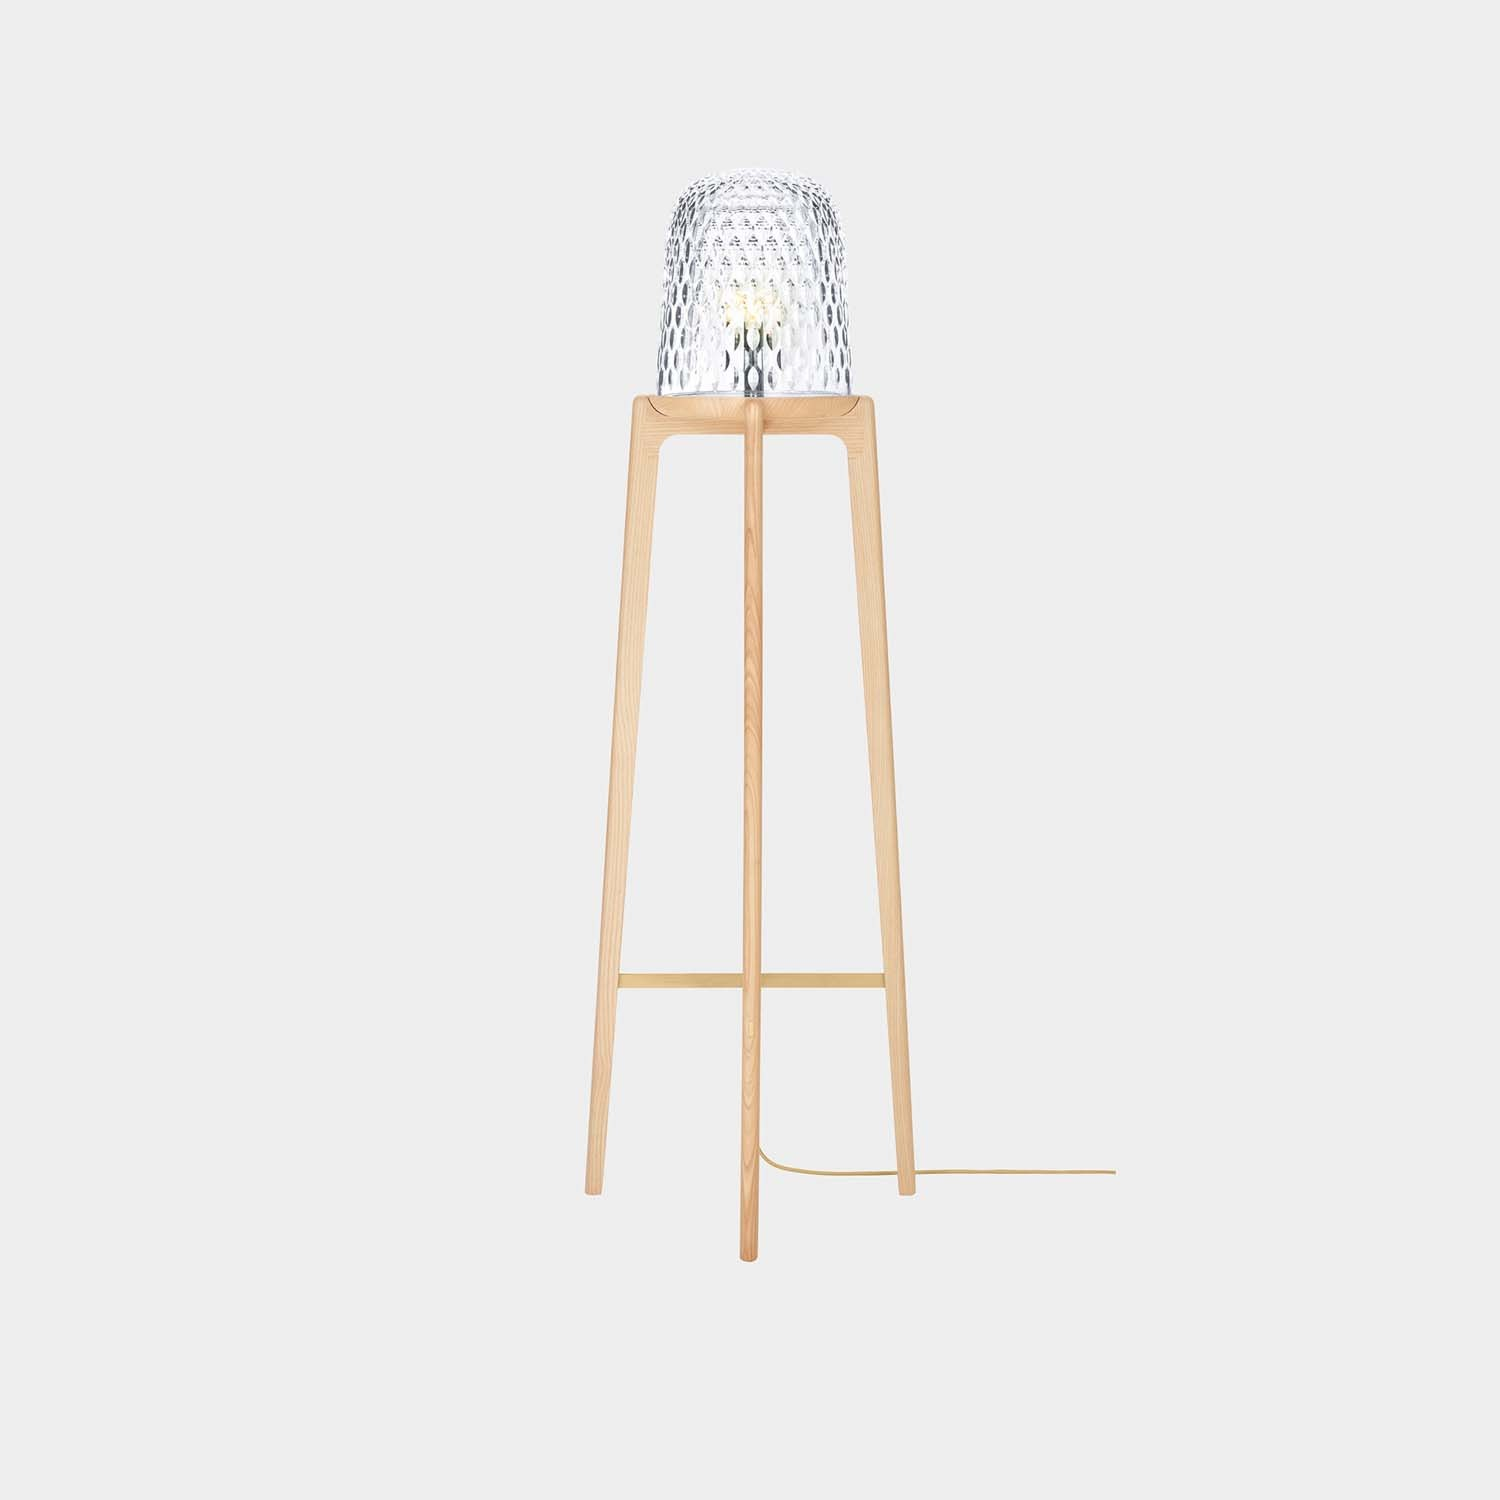 Floor Lamp Folia, Tall